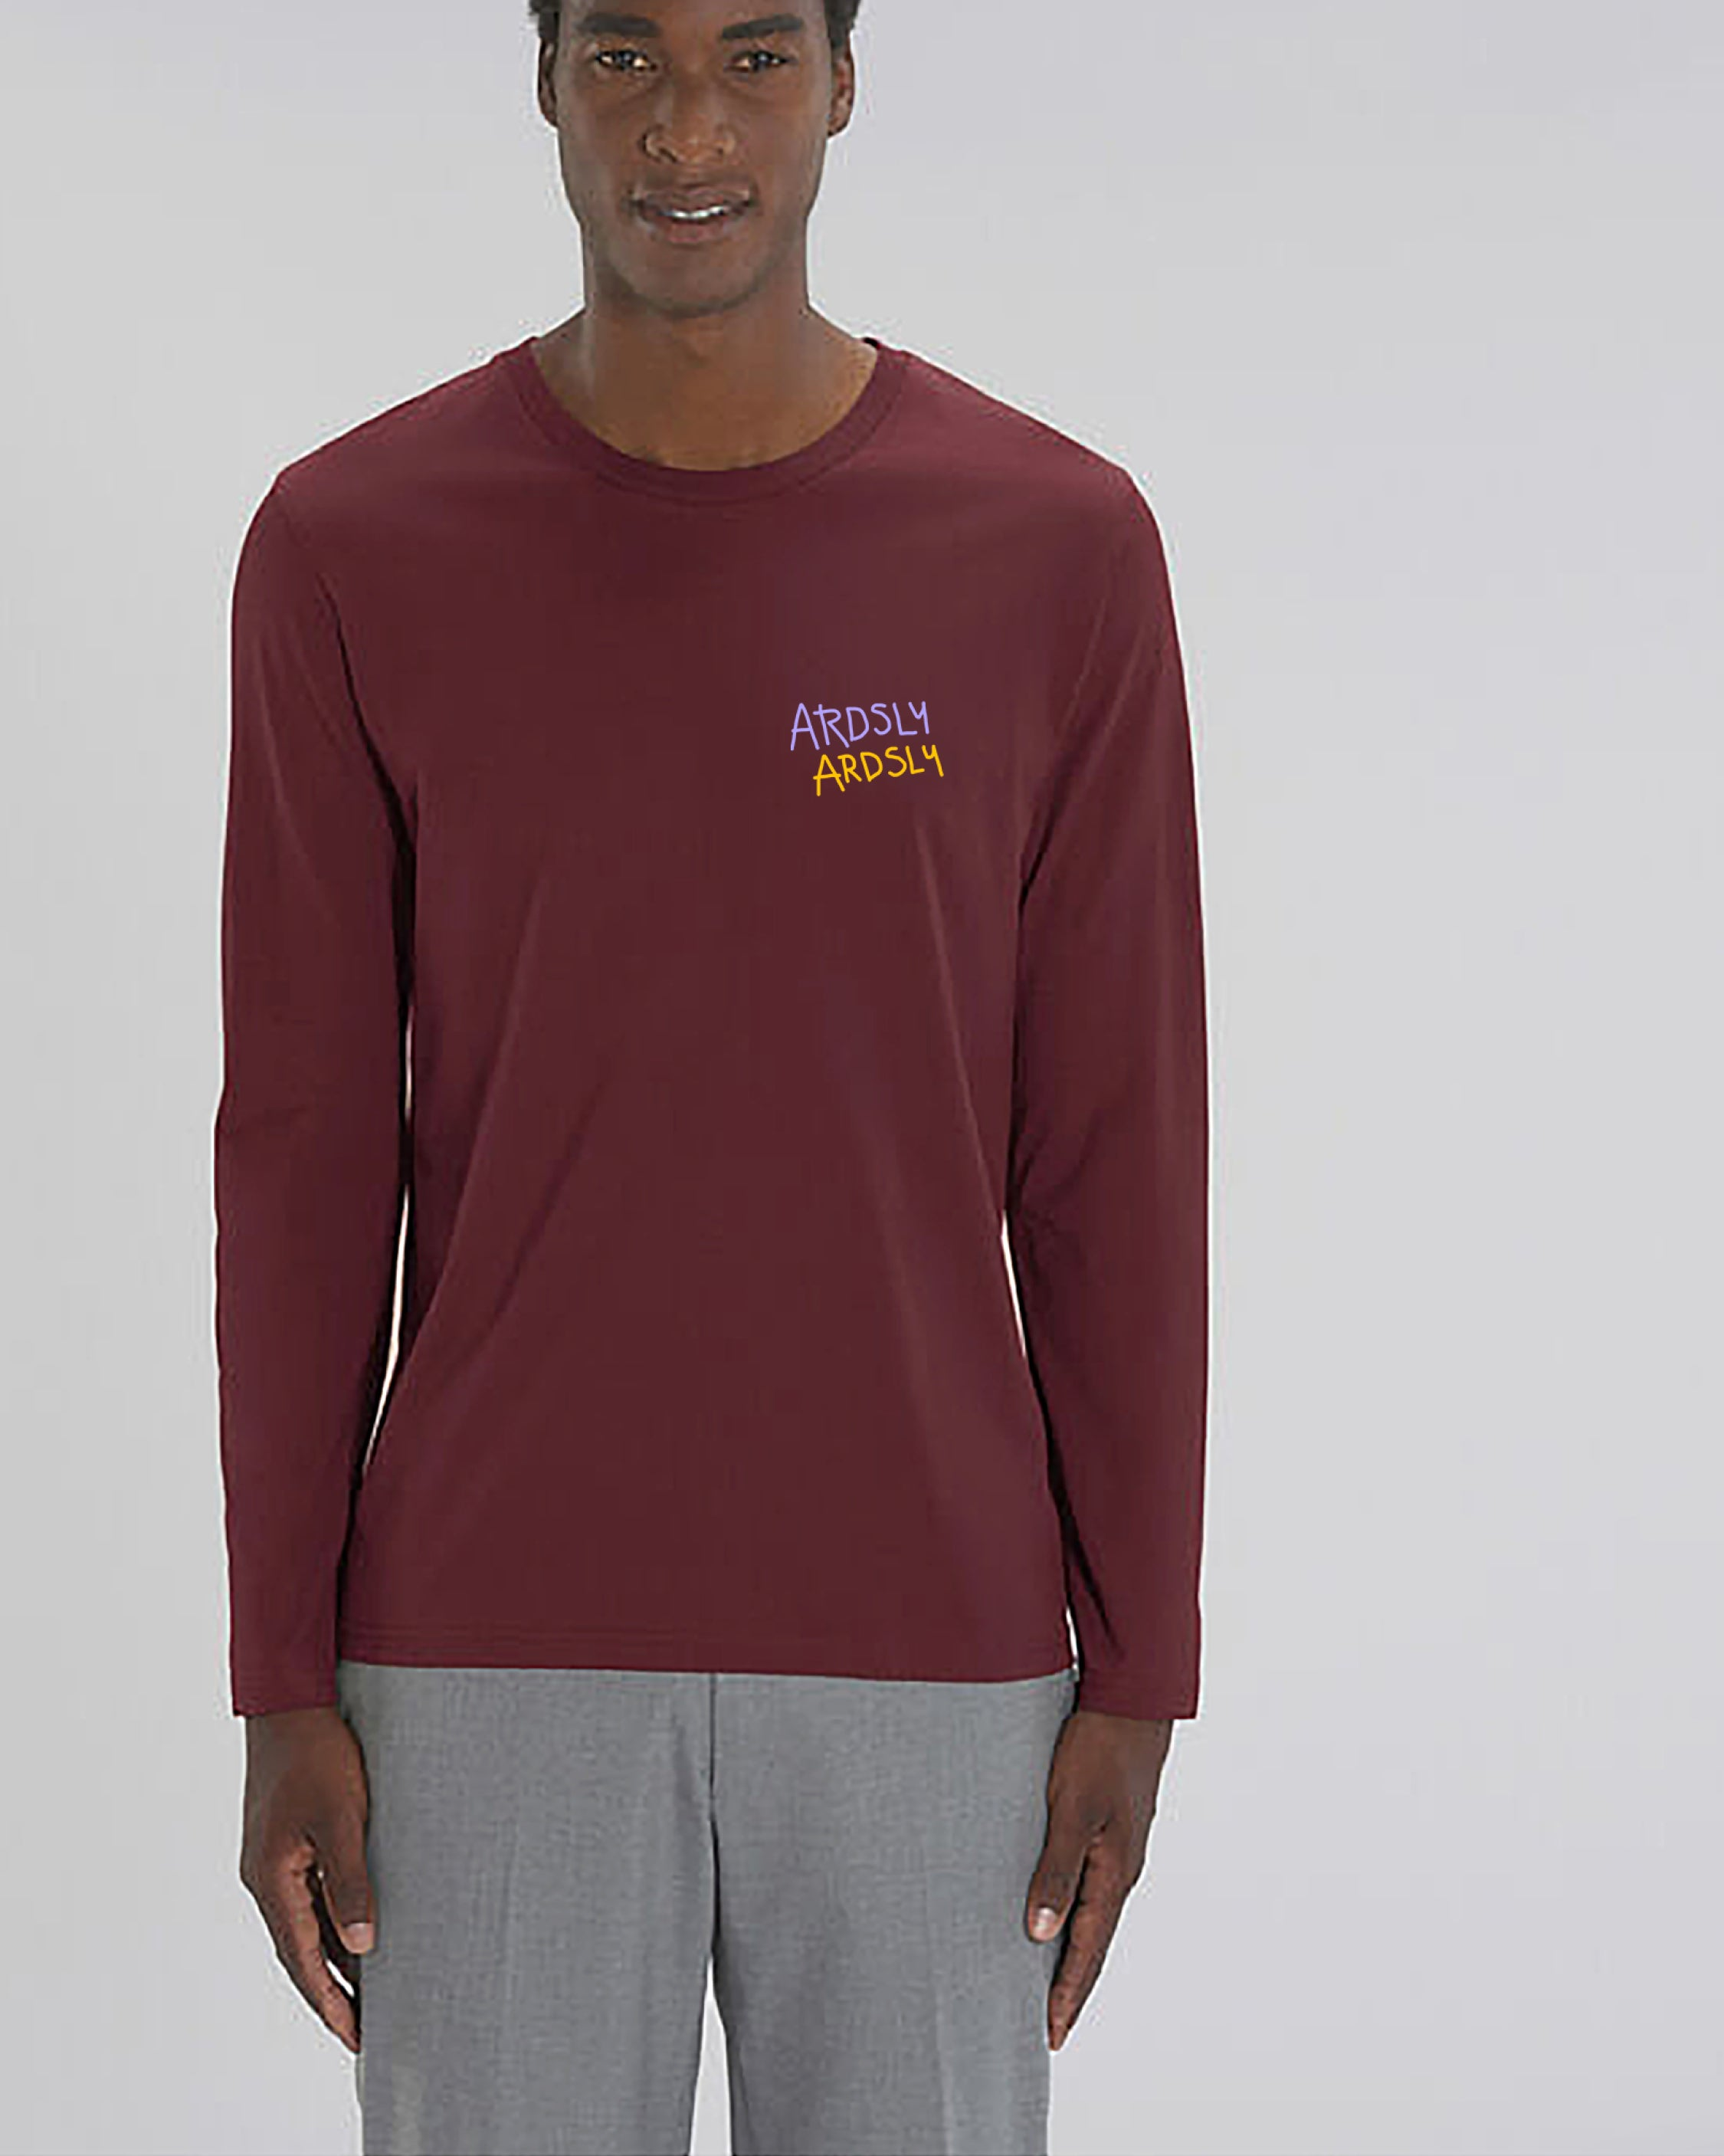 Ardsly Maroon Long Tee | Organic Staple